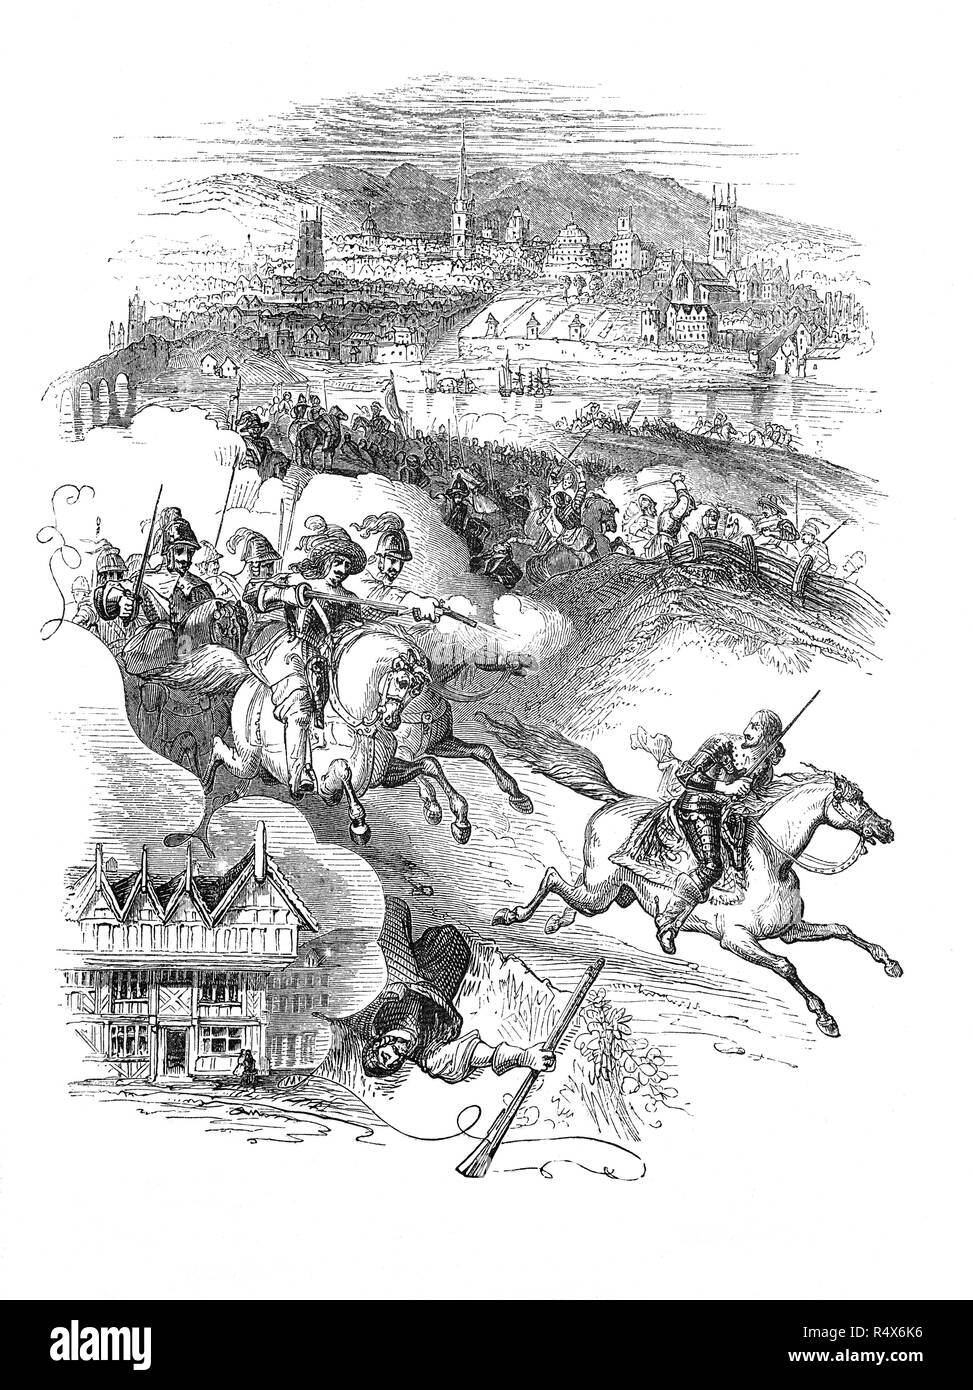 A collage of the Battle of Worcester, the final battle of the English Civil War, when Oliver Cromwell's New Model Army defeated King Charles II's Cavaliers on 3 September 1651.  Overlooking the River Severn, the City of Worcester in Worcestershire, England, supported the Parliamentary cause before the outbreak of civil war in 1642, but was city was swiftly occupied by the Royalists, as Royalist power collapsed Worcester was placed under siege finally surrendering on 23 July, bringing the first civil war to a close in Worcestershire.  After the battle Charles II  eventually escaped to France. - Stock Image